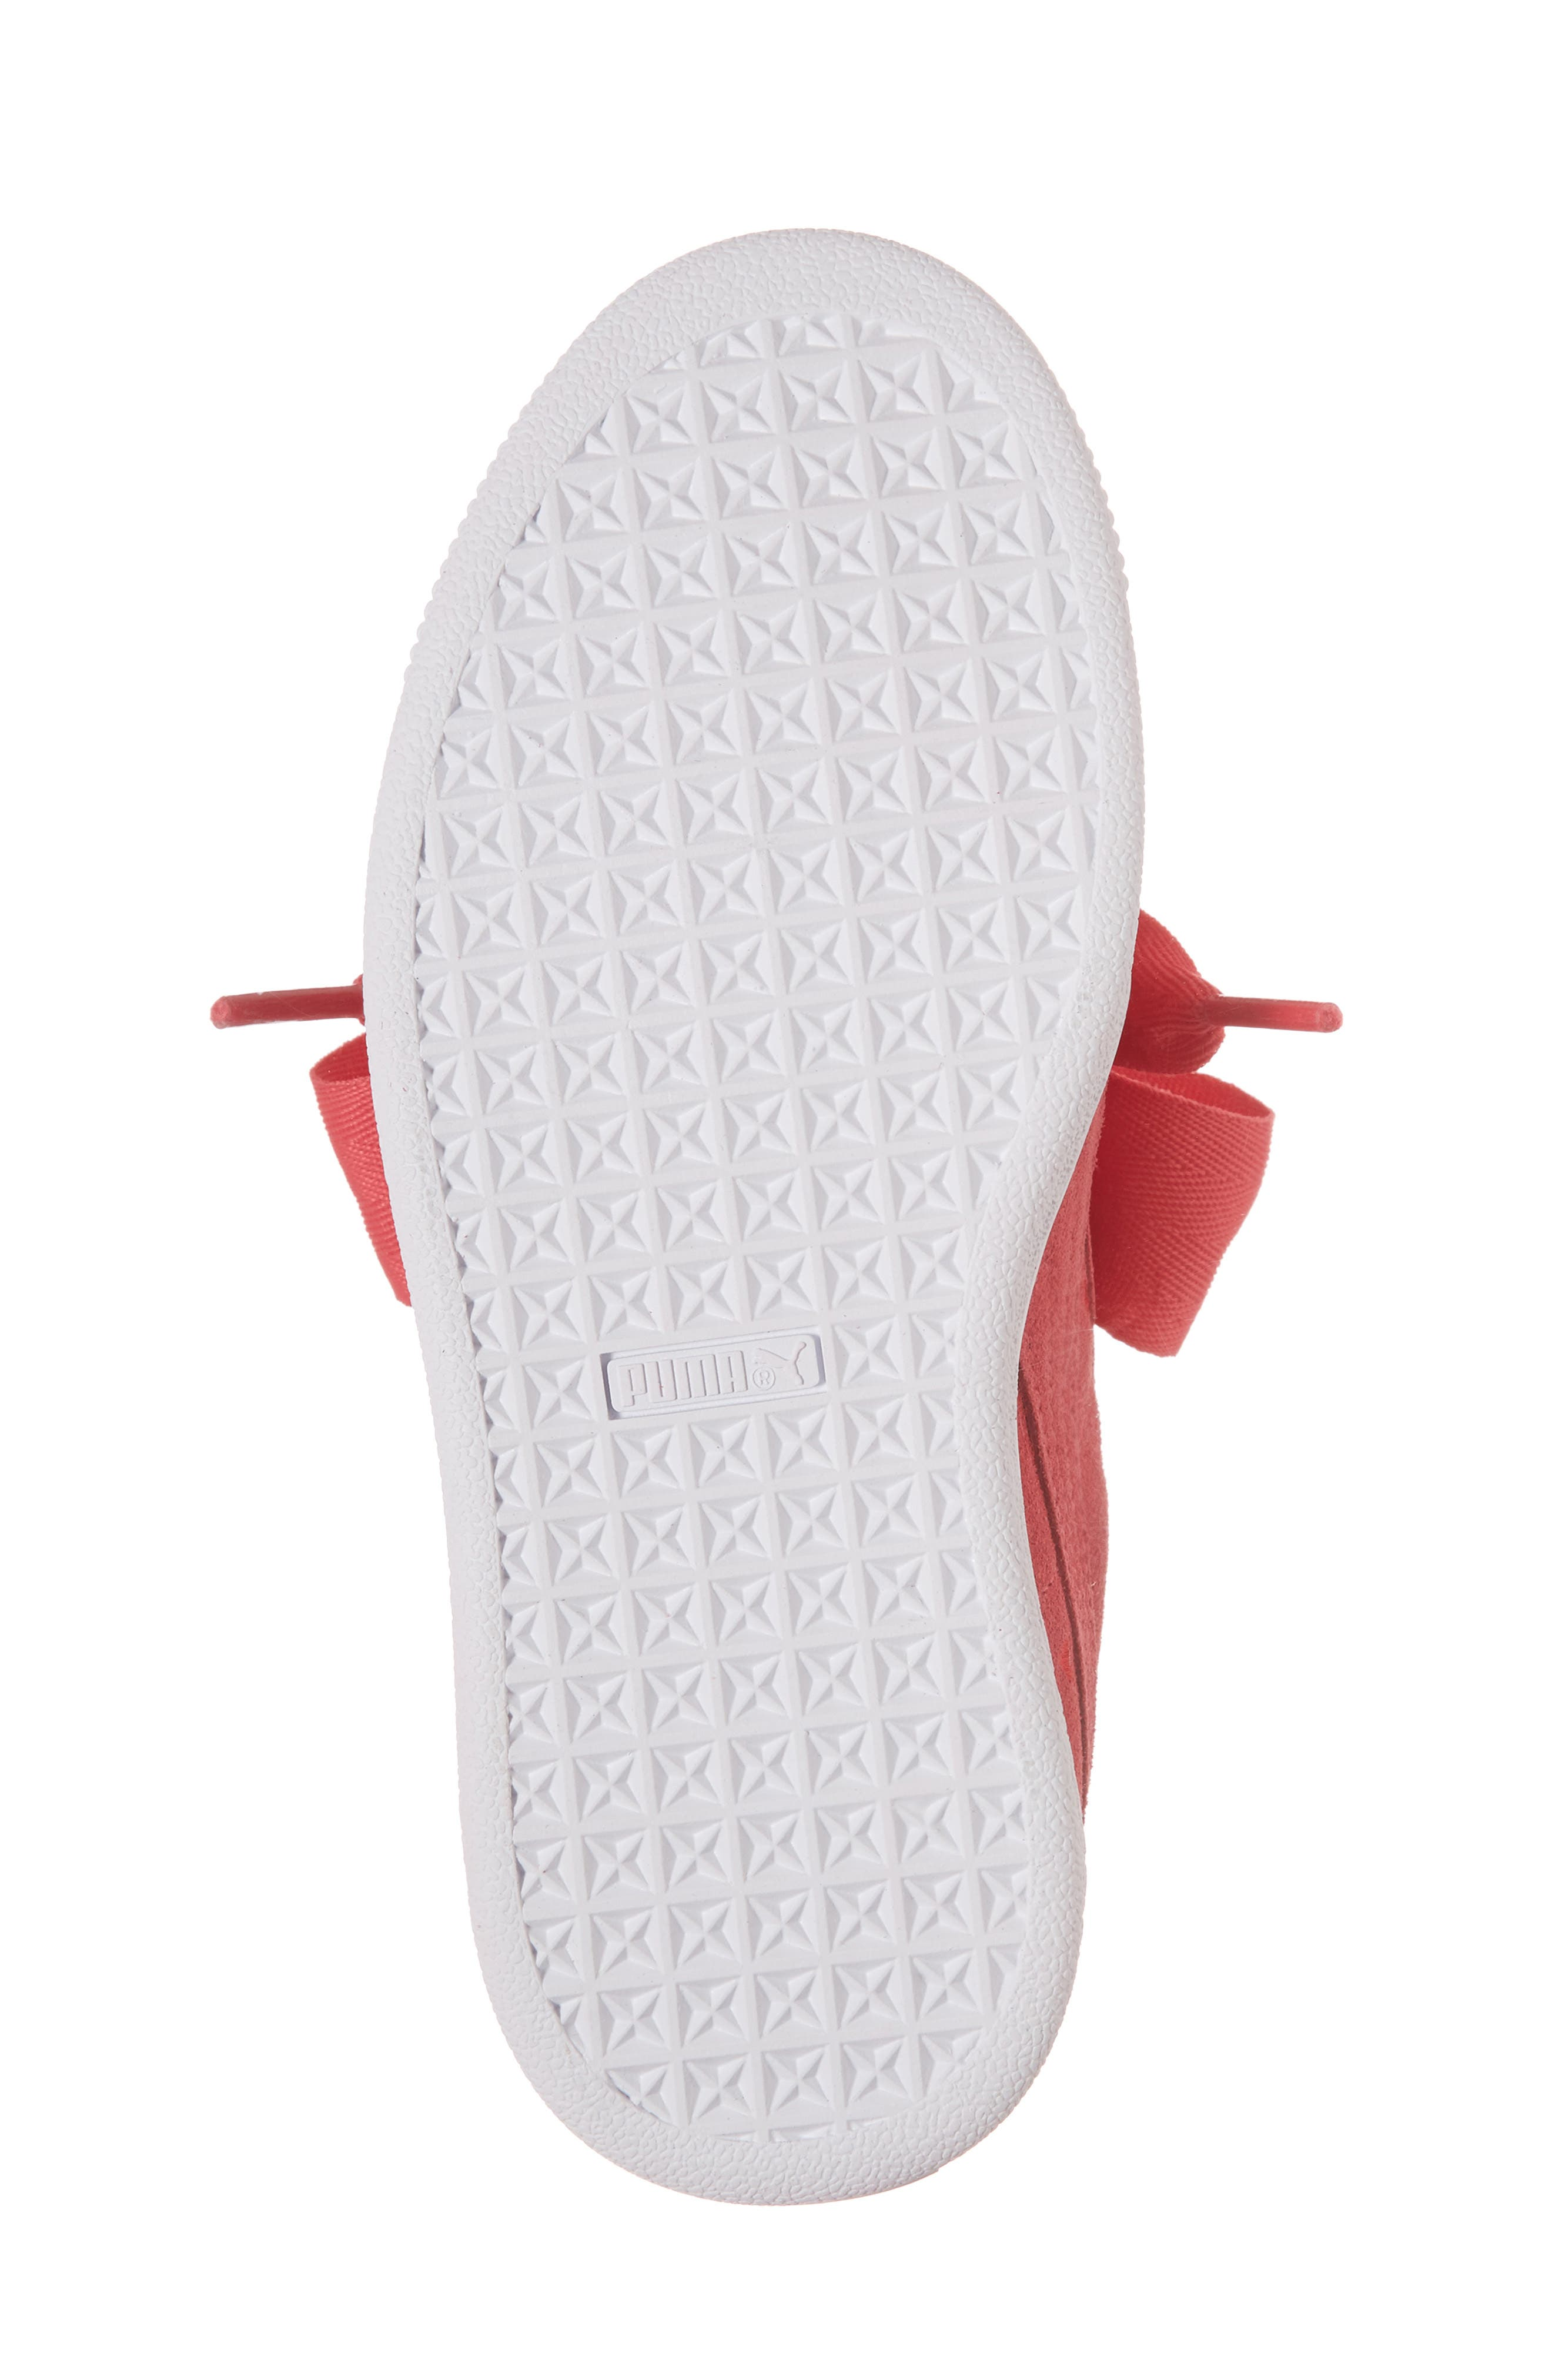 Suede Heart Valentine Sneaker,                             Alternate thumbnail 6, color,                             Paradise Pink/ Paradise Pink